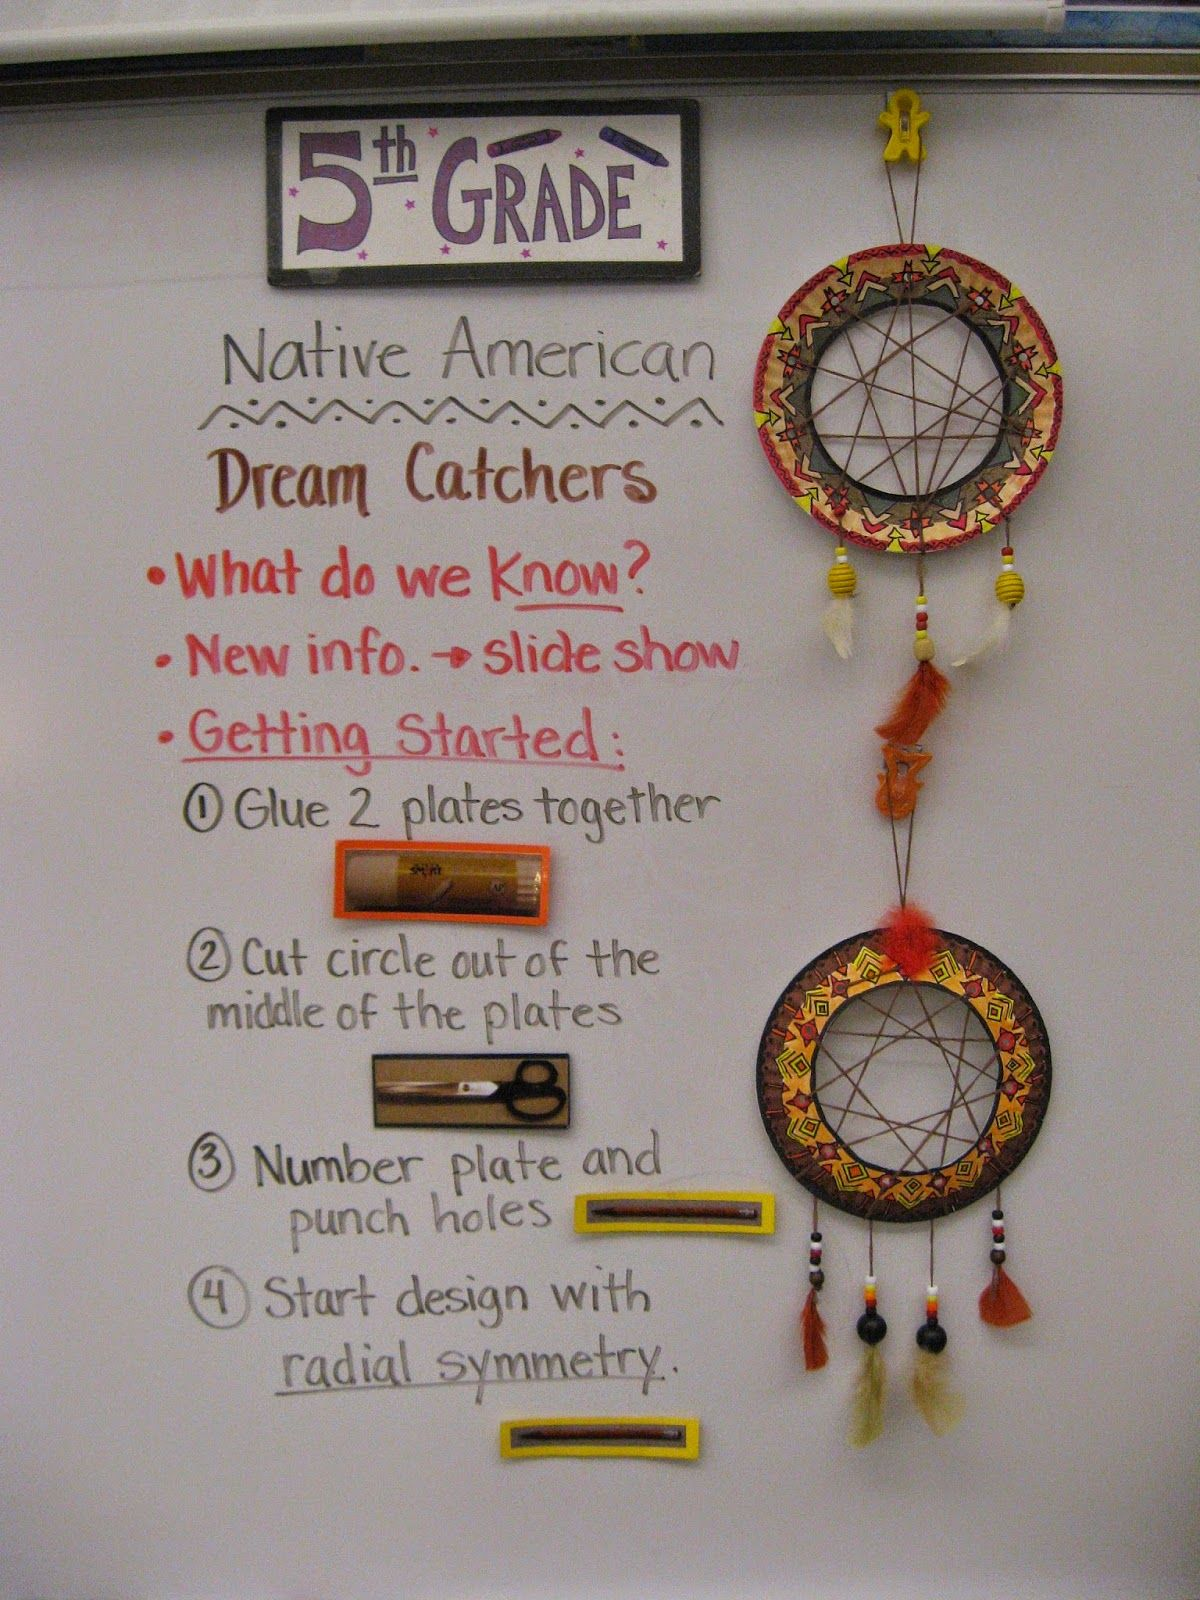 5th Grade Native American Dream Catchers   Elementary school art [ 1600 x 1200 Pixel ]